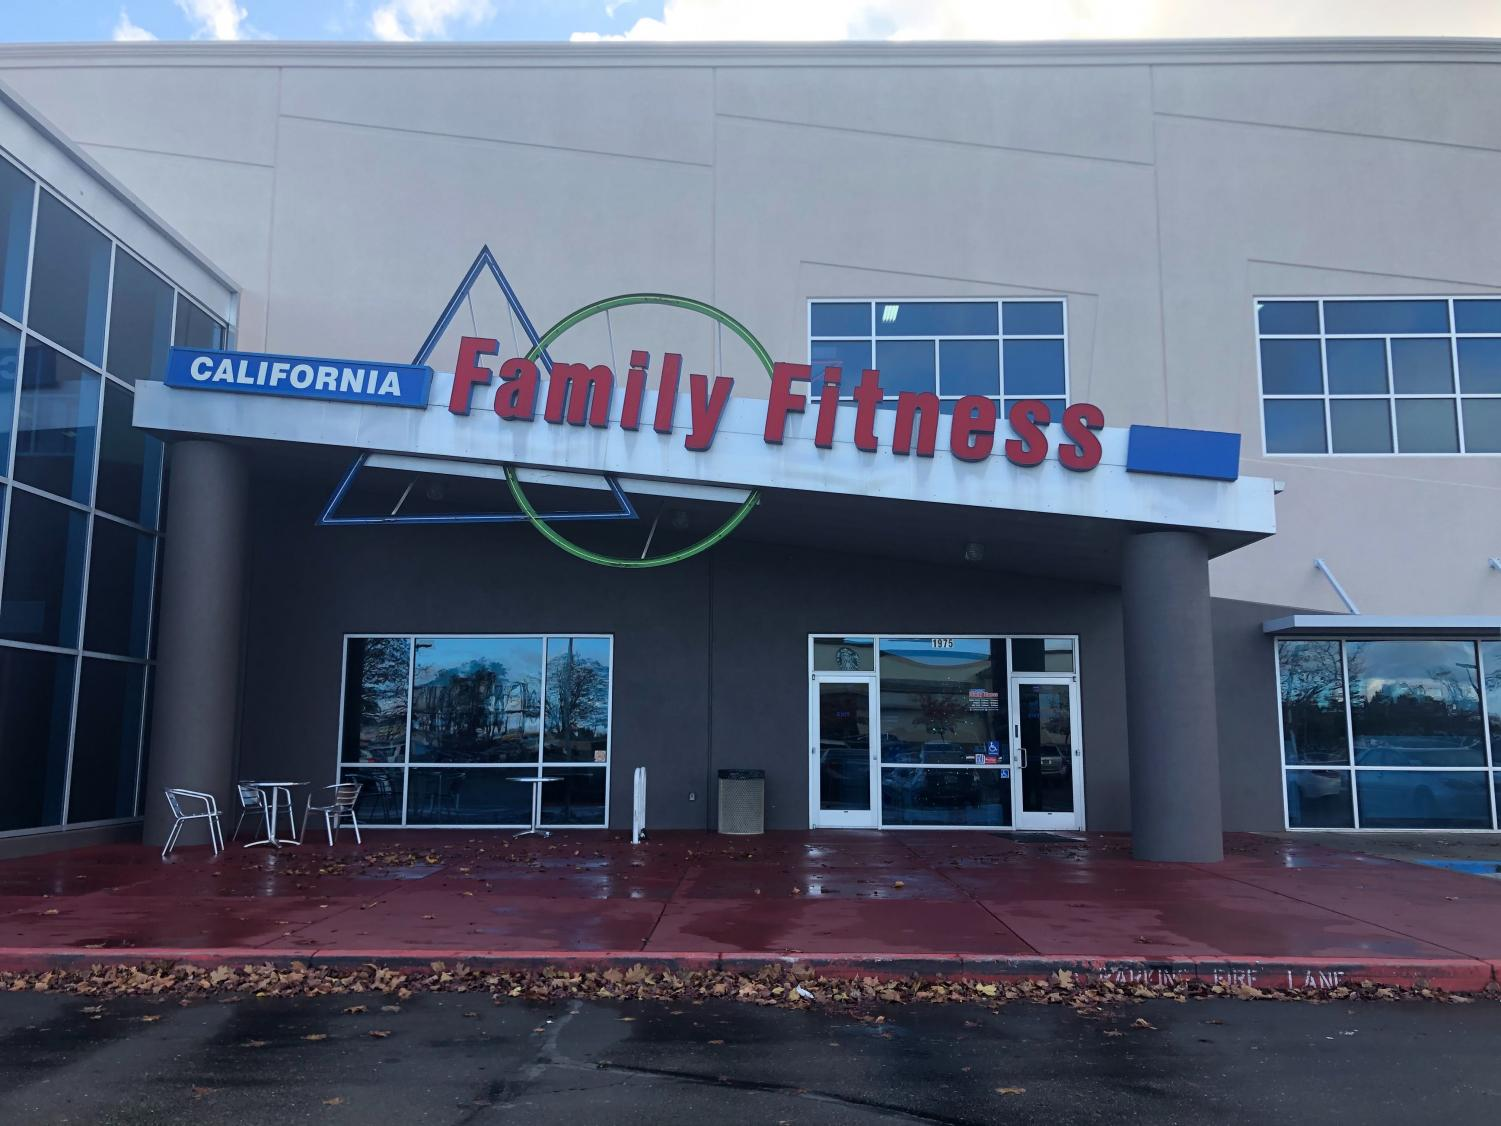 A Cal Fit building on Zinfadel Road in Rancho Cordova. Cal Fit has tabled at Sac State, but SO&L announced Friday that they are no longer allowed to table on campus as a vendor.